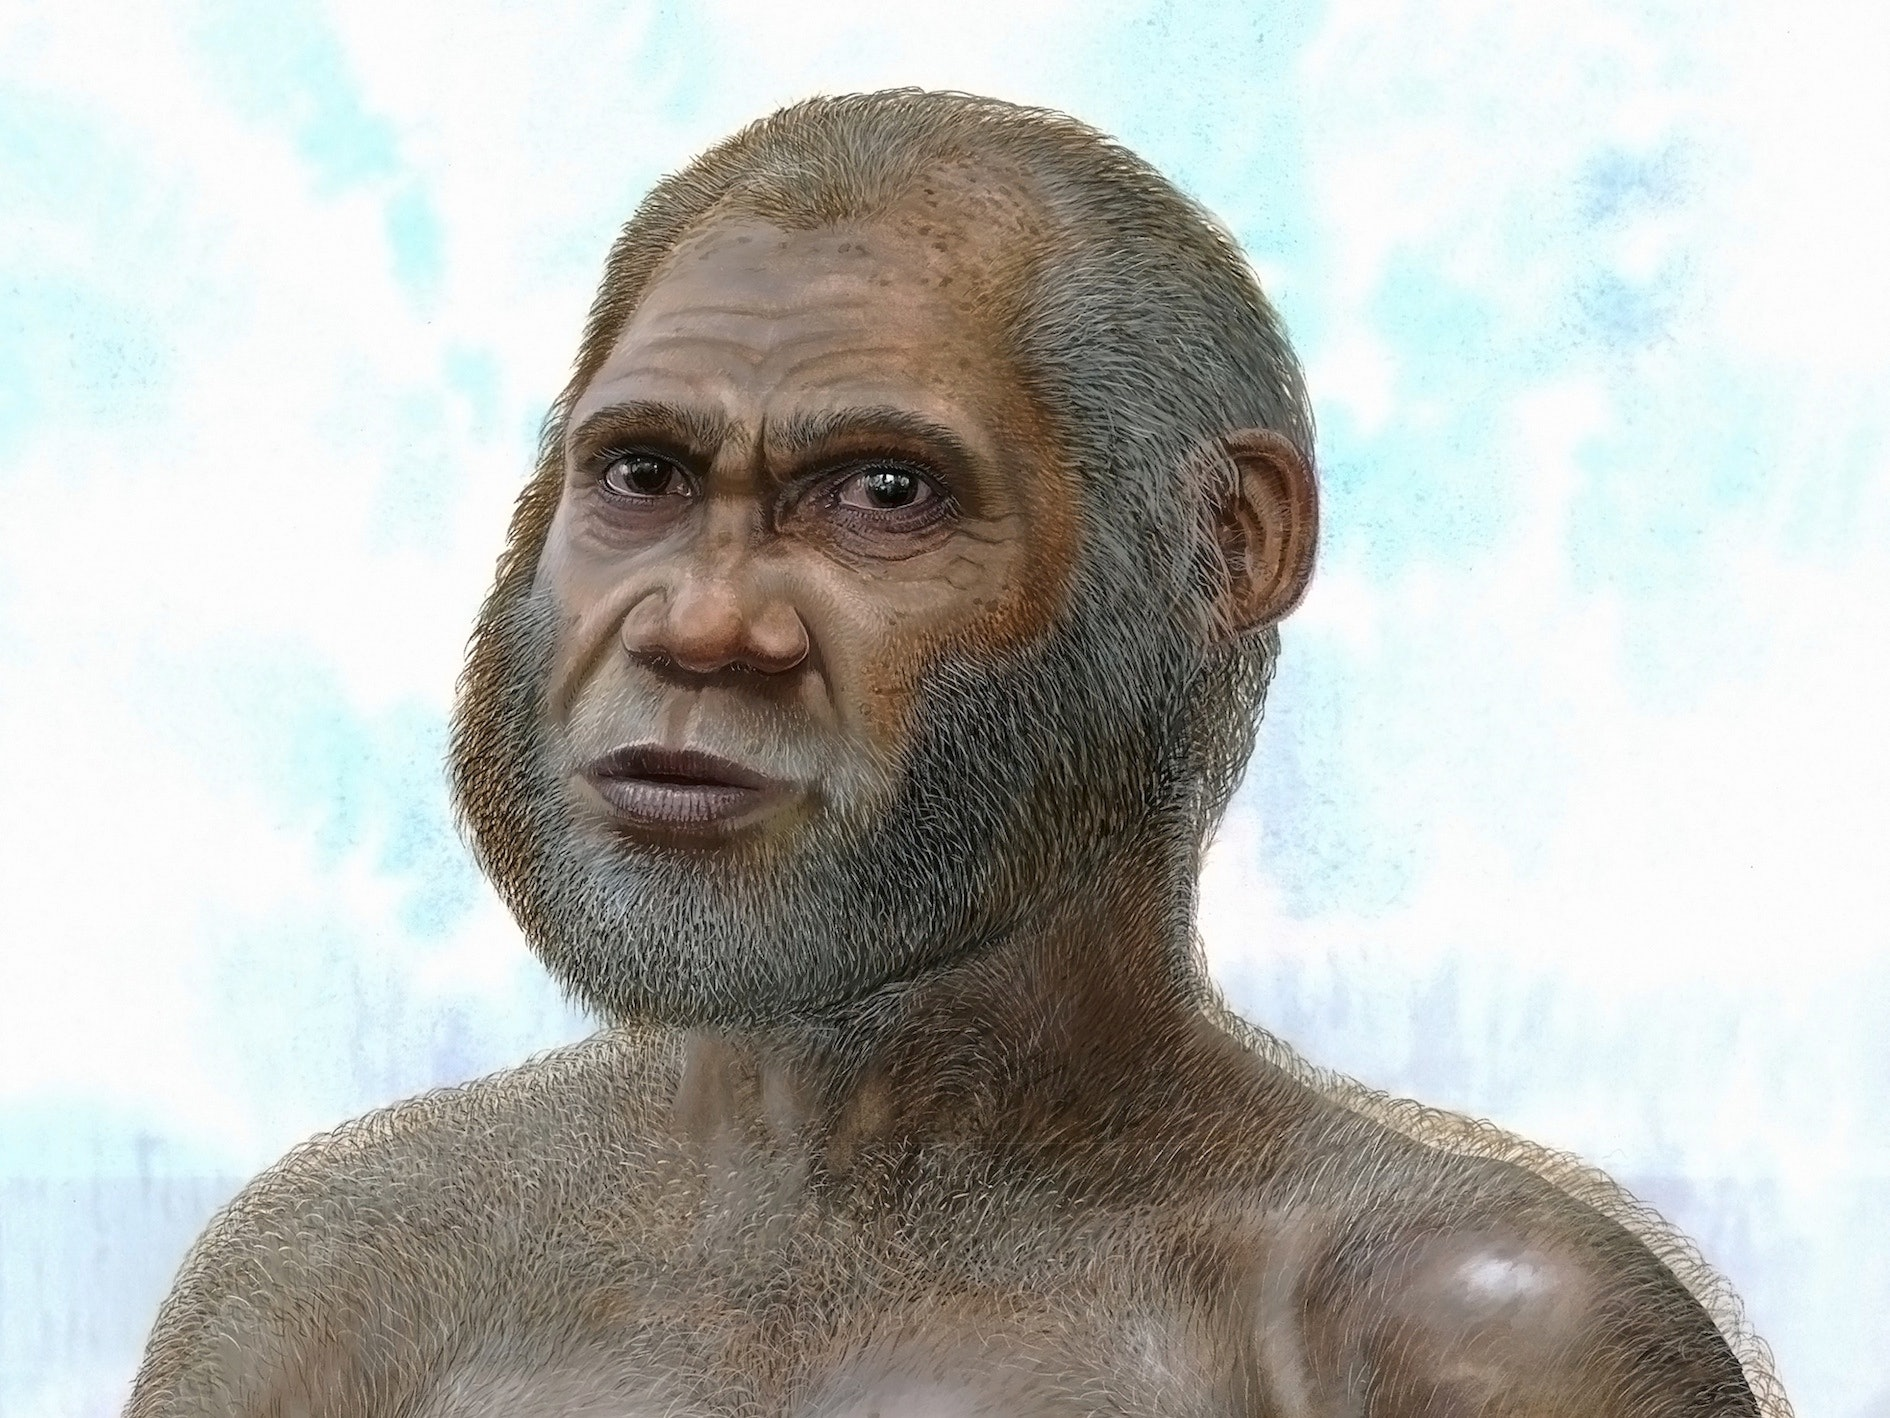 Scientists Think This Ancient Human Lived Among Our Modern Cousins